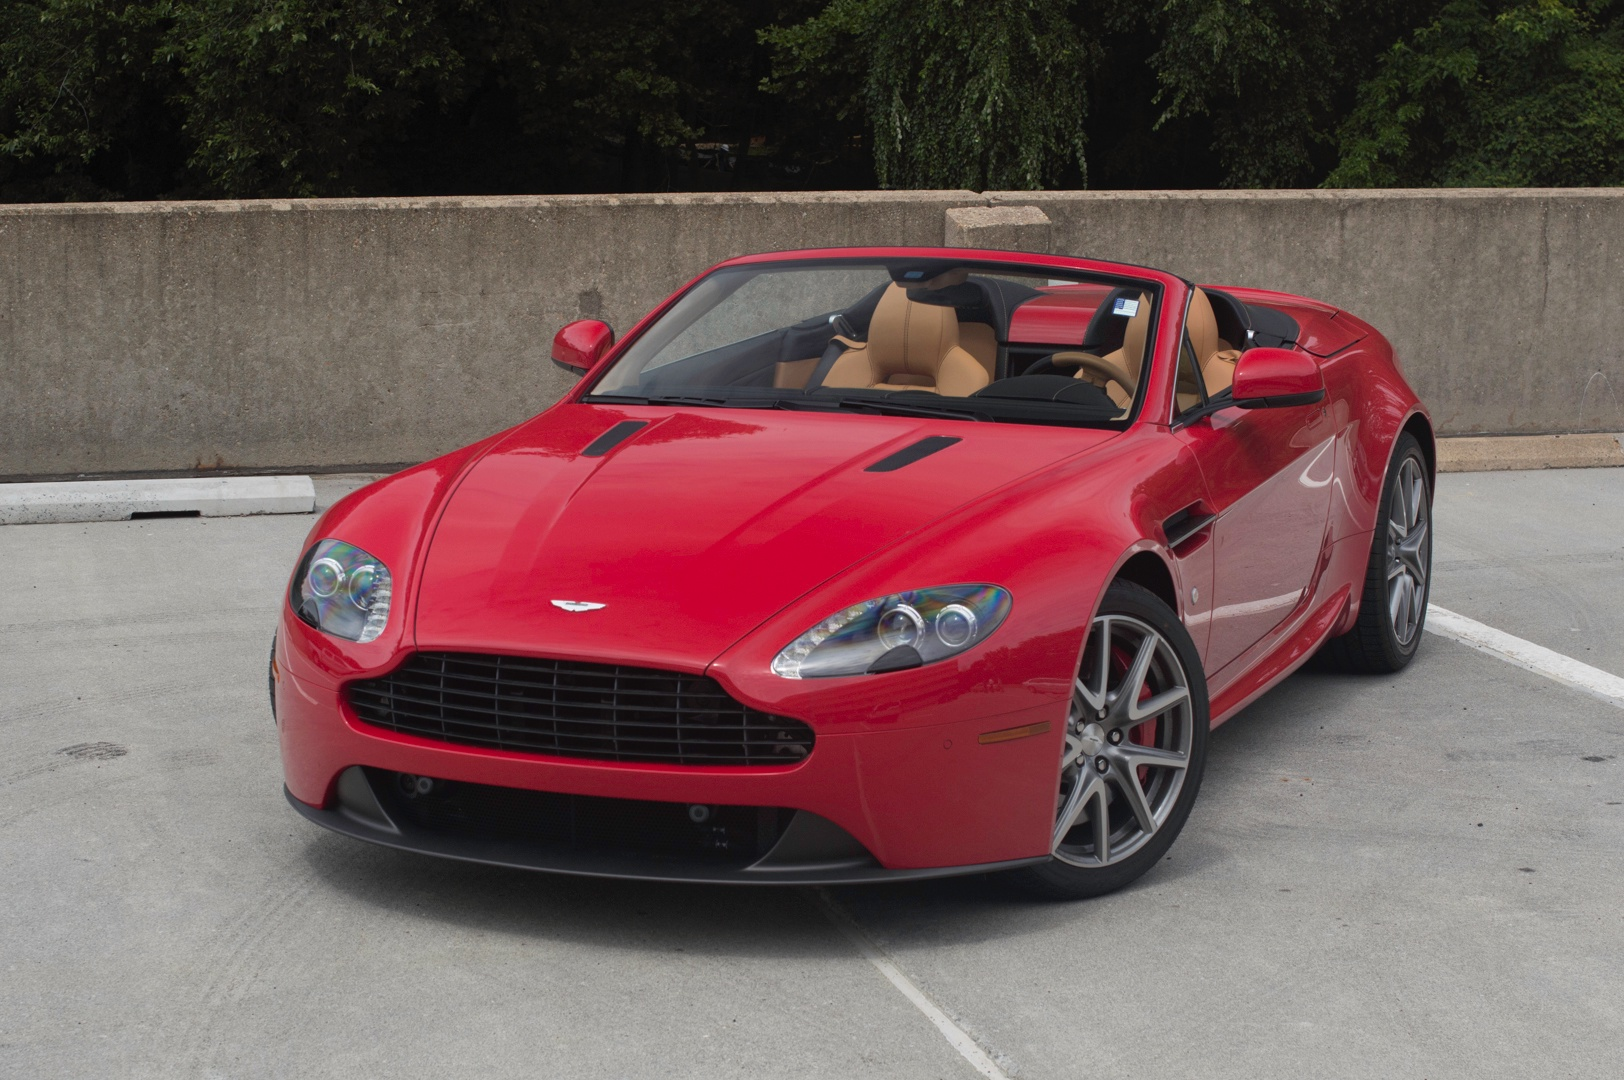 2014 aston martin v8 vantage roadster roadster stock 4nd18220 for sale near vienna va va. Black Bedroom Furniture Sets. Home Design Ideas